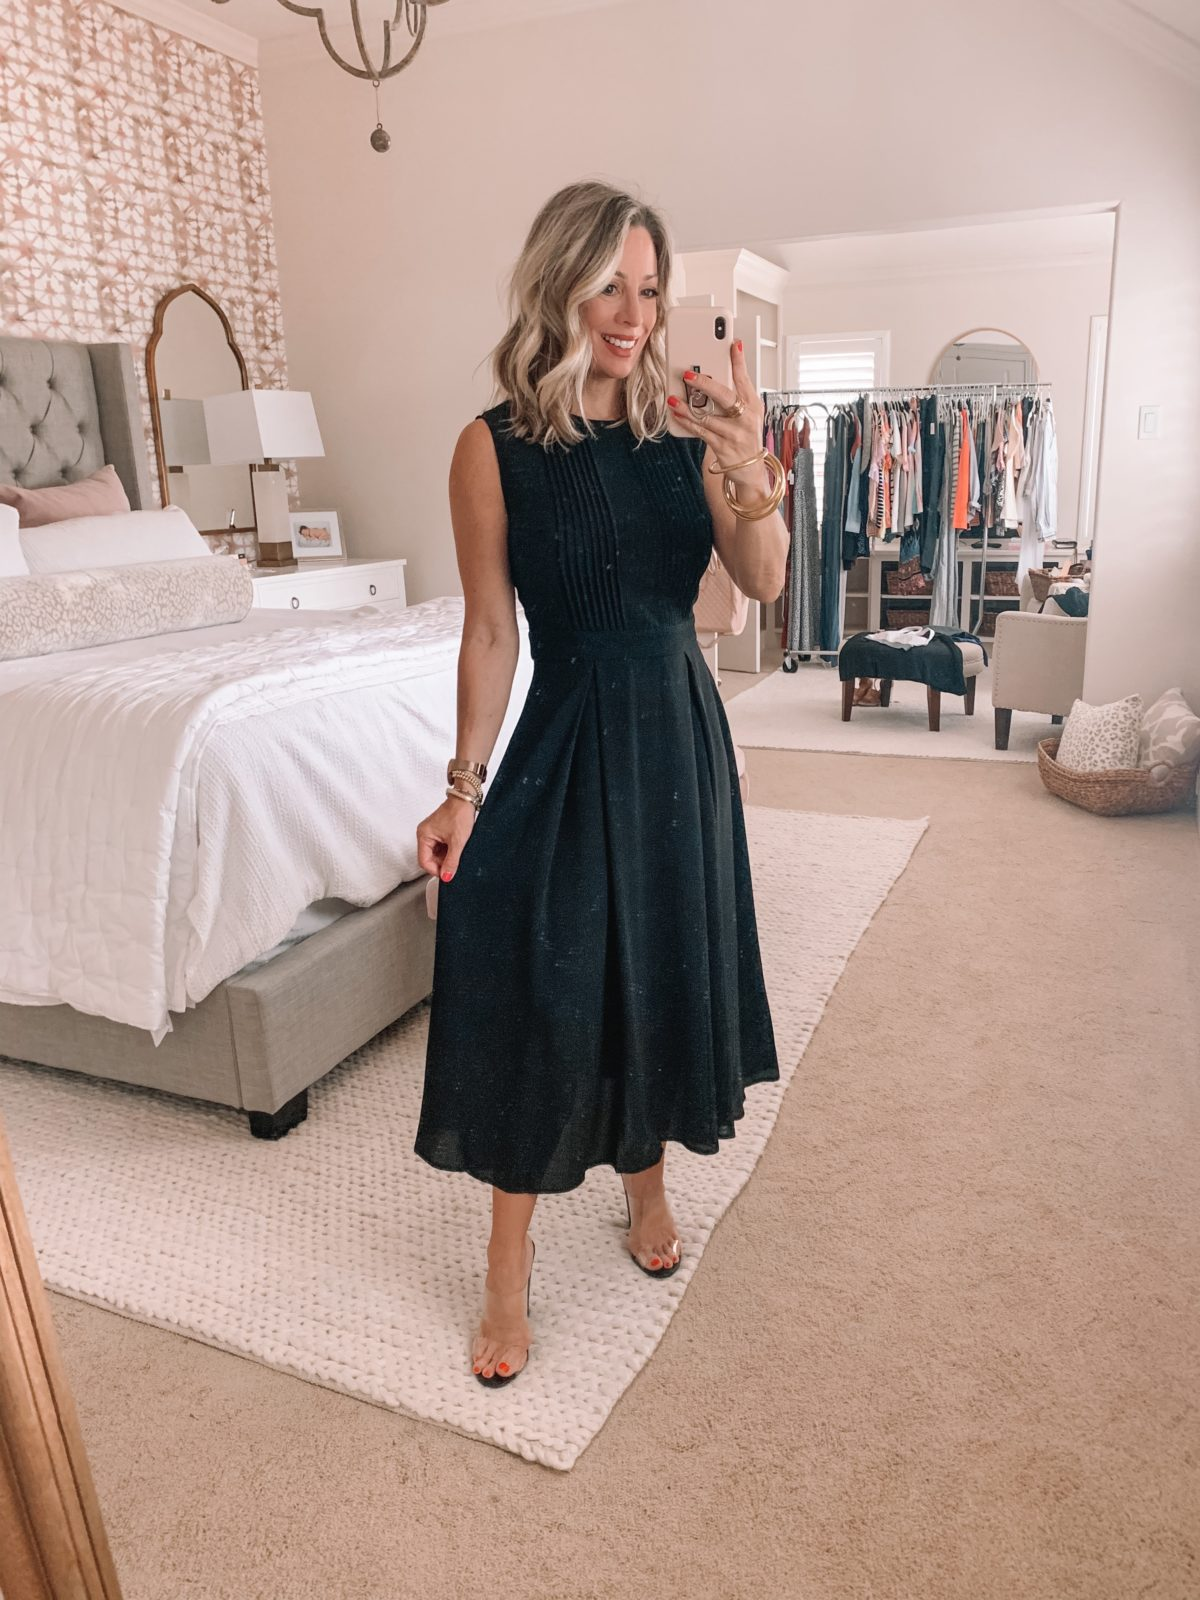 Amazon Fashion Finds, Black Crew Neck A Line Dress, Clear Sandals